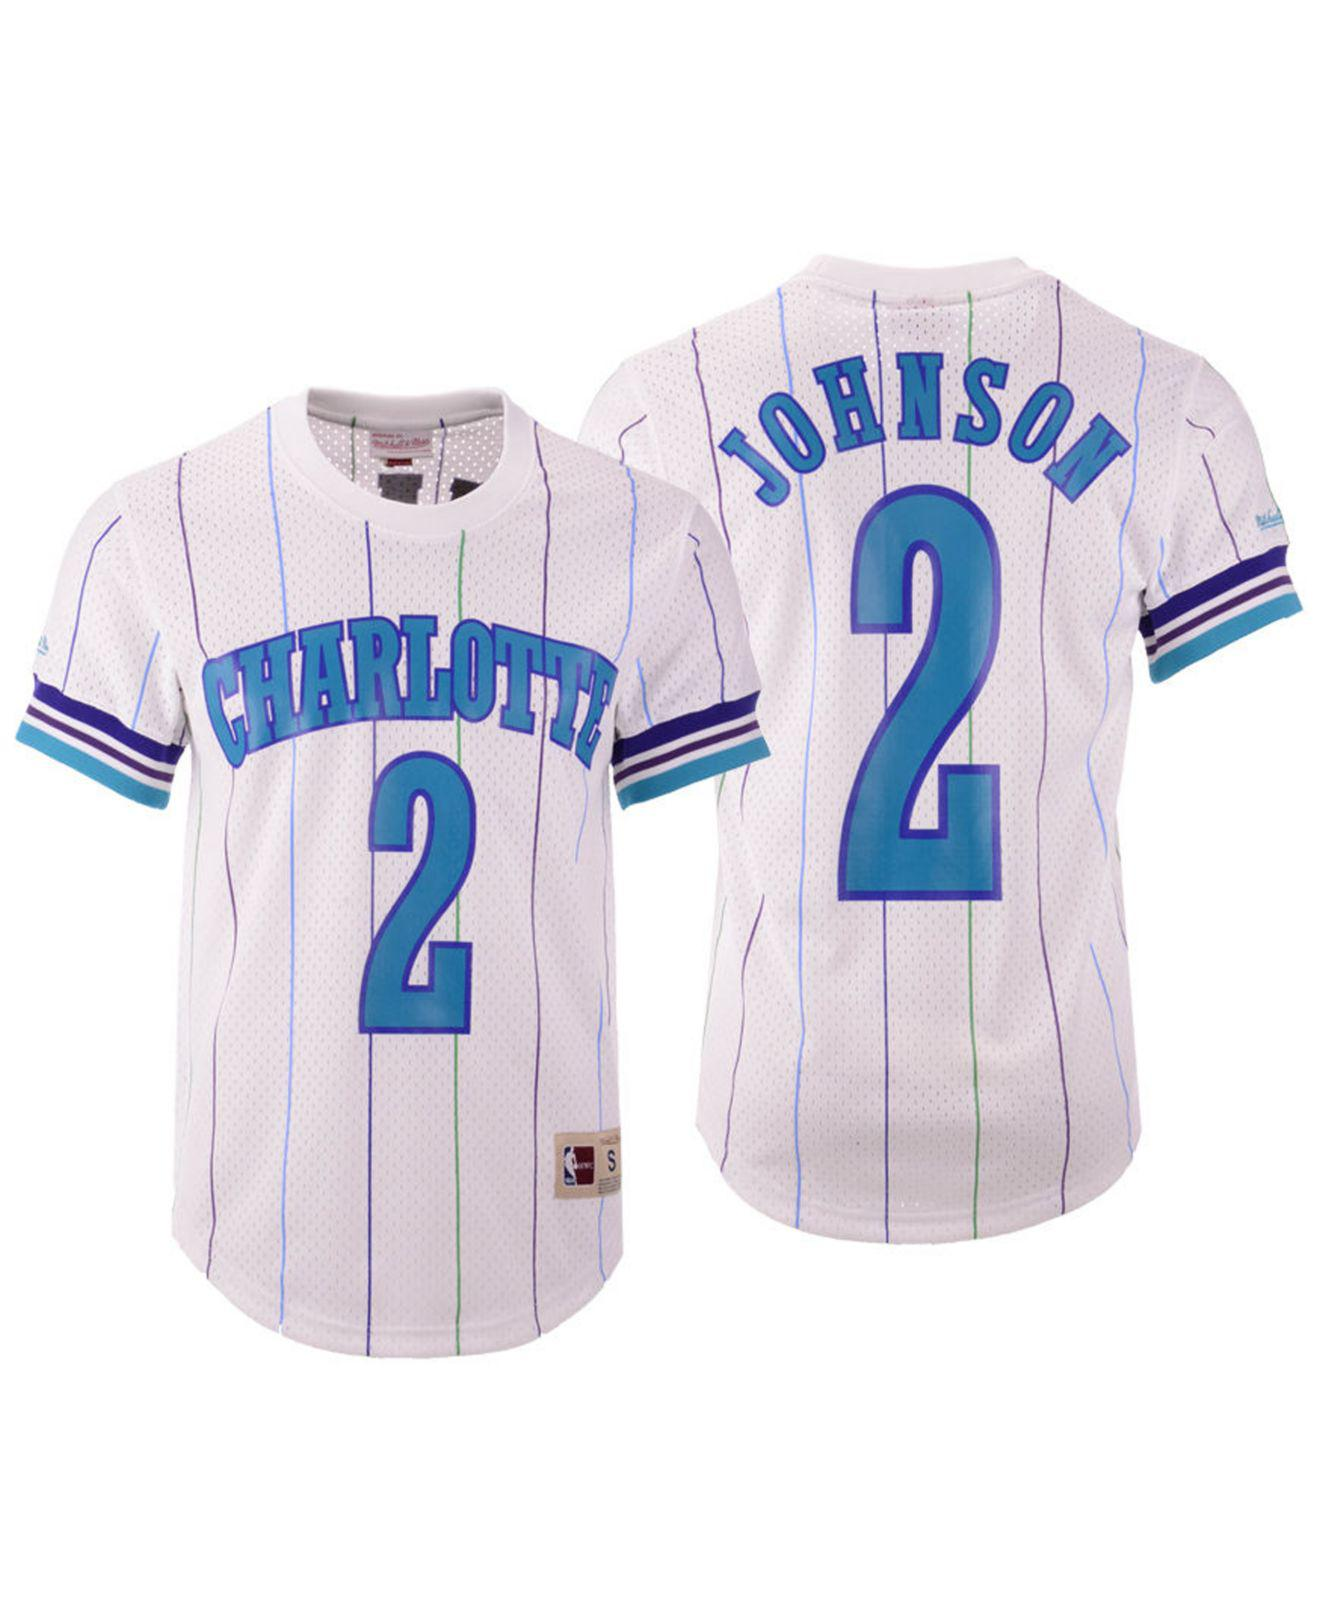 00a2ec54c Mitchell   Ness. Men s White Larry Johnson Charlotte Hornets Name And  Number Mesh Crewneck Jersey